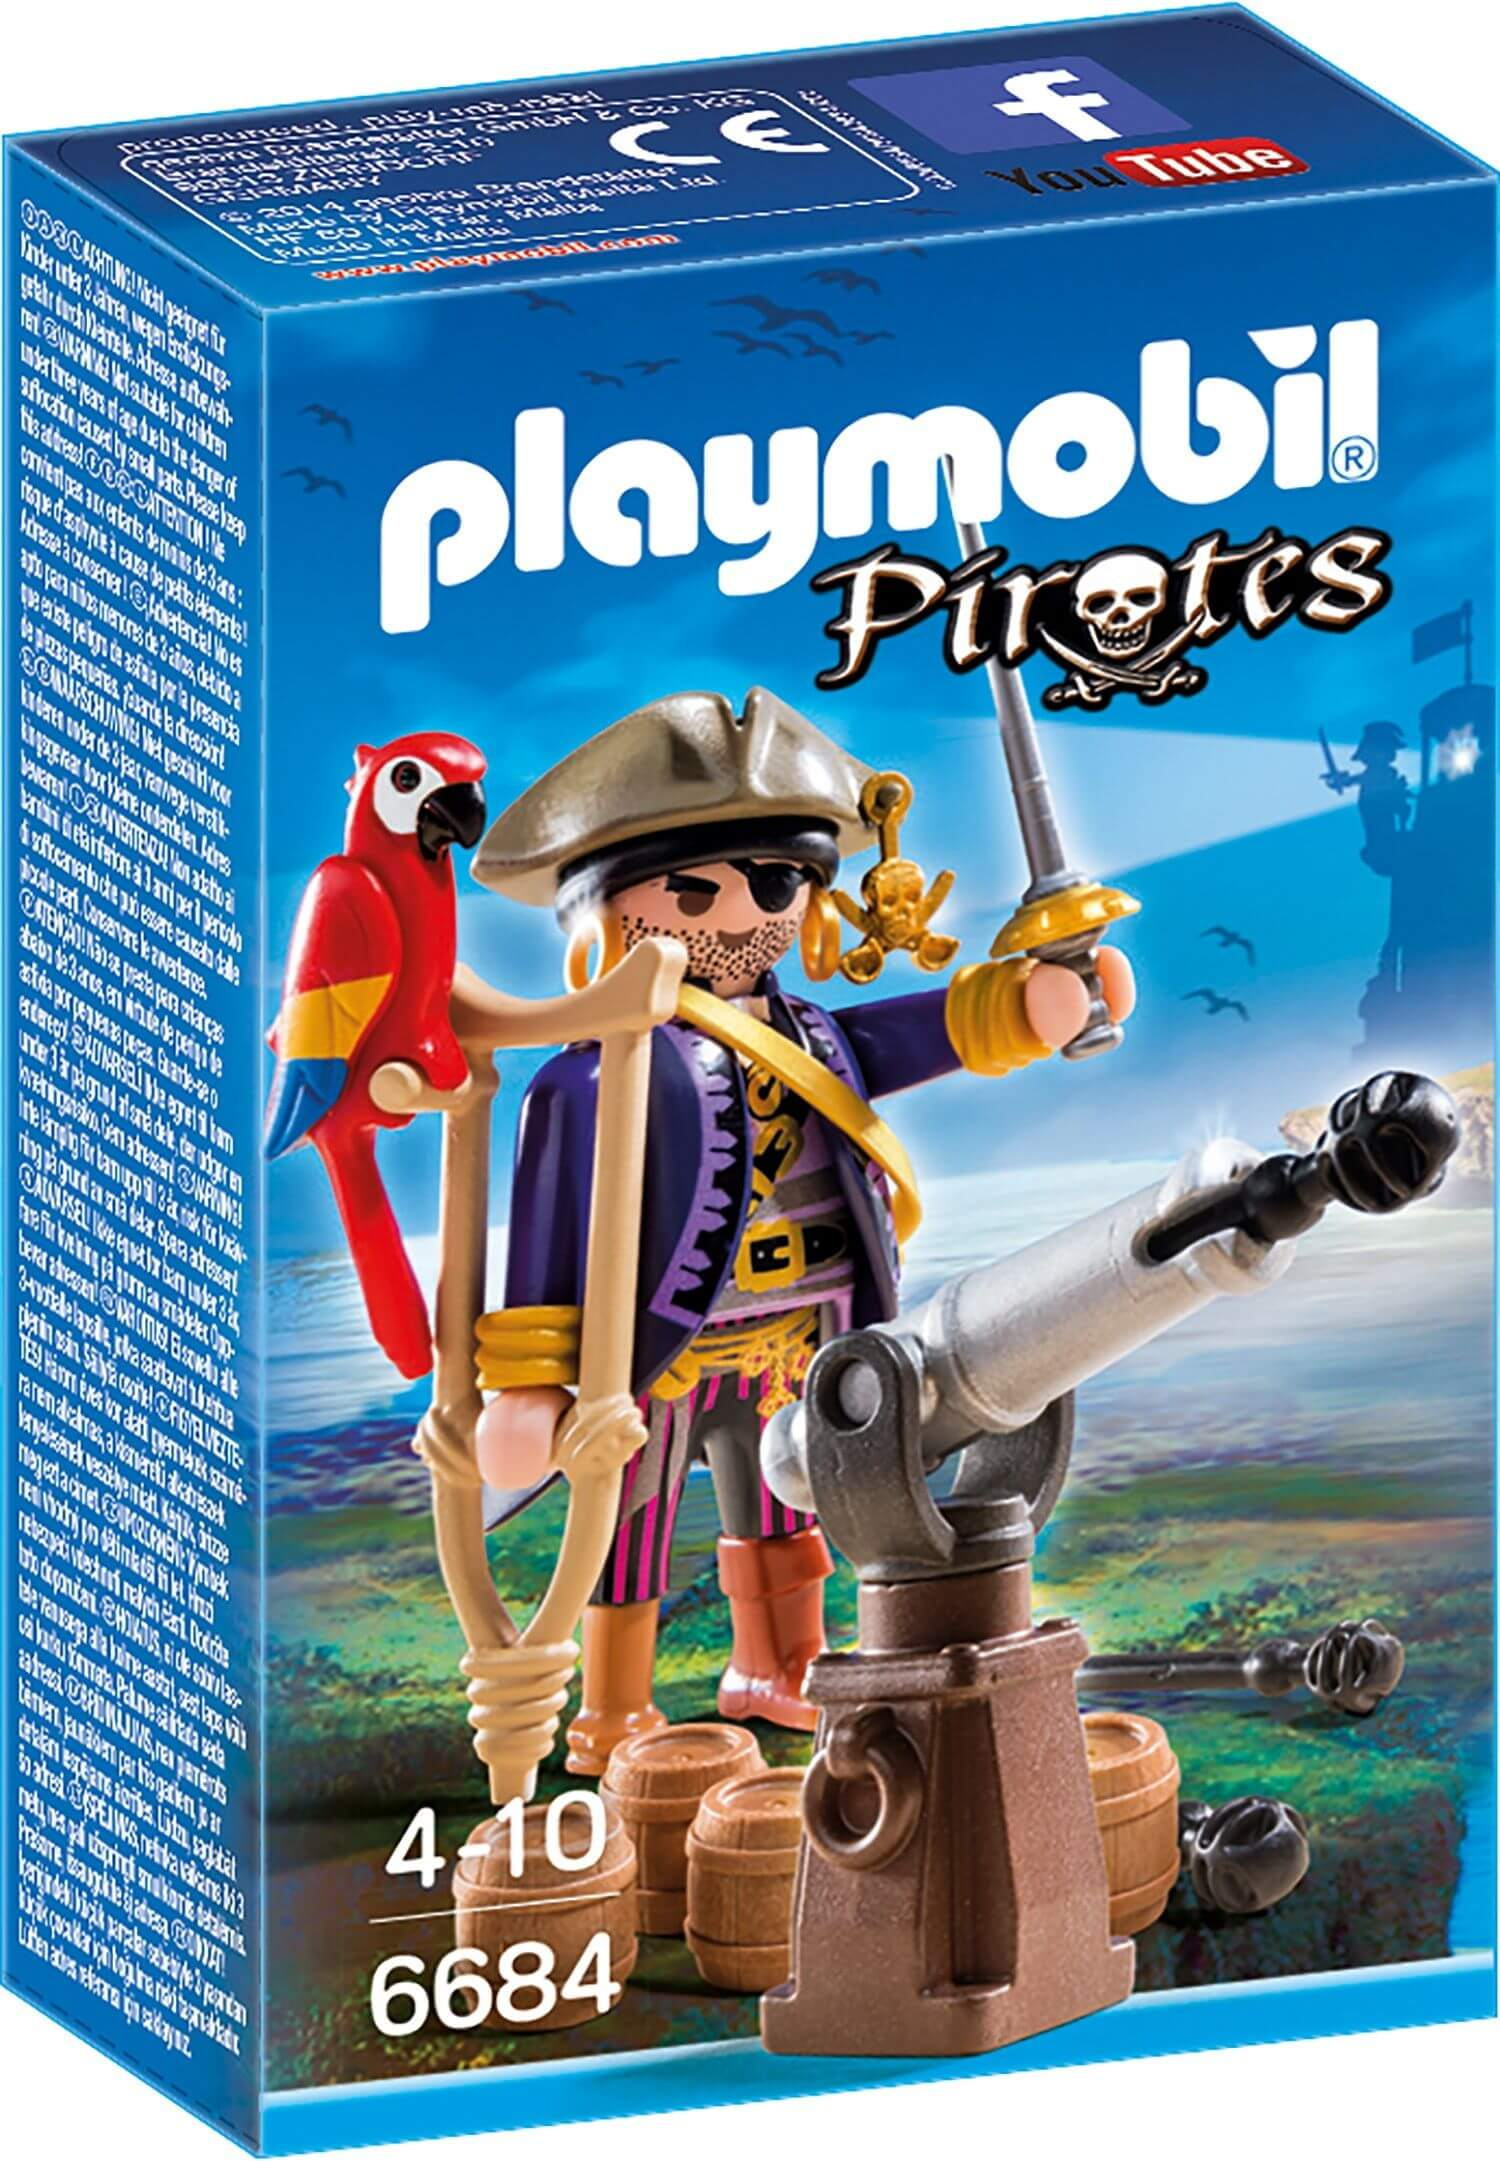 Playmobil pirate captain jadrem toys for Playmobil post